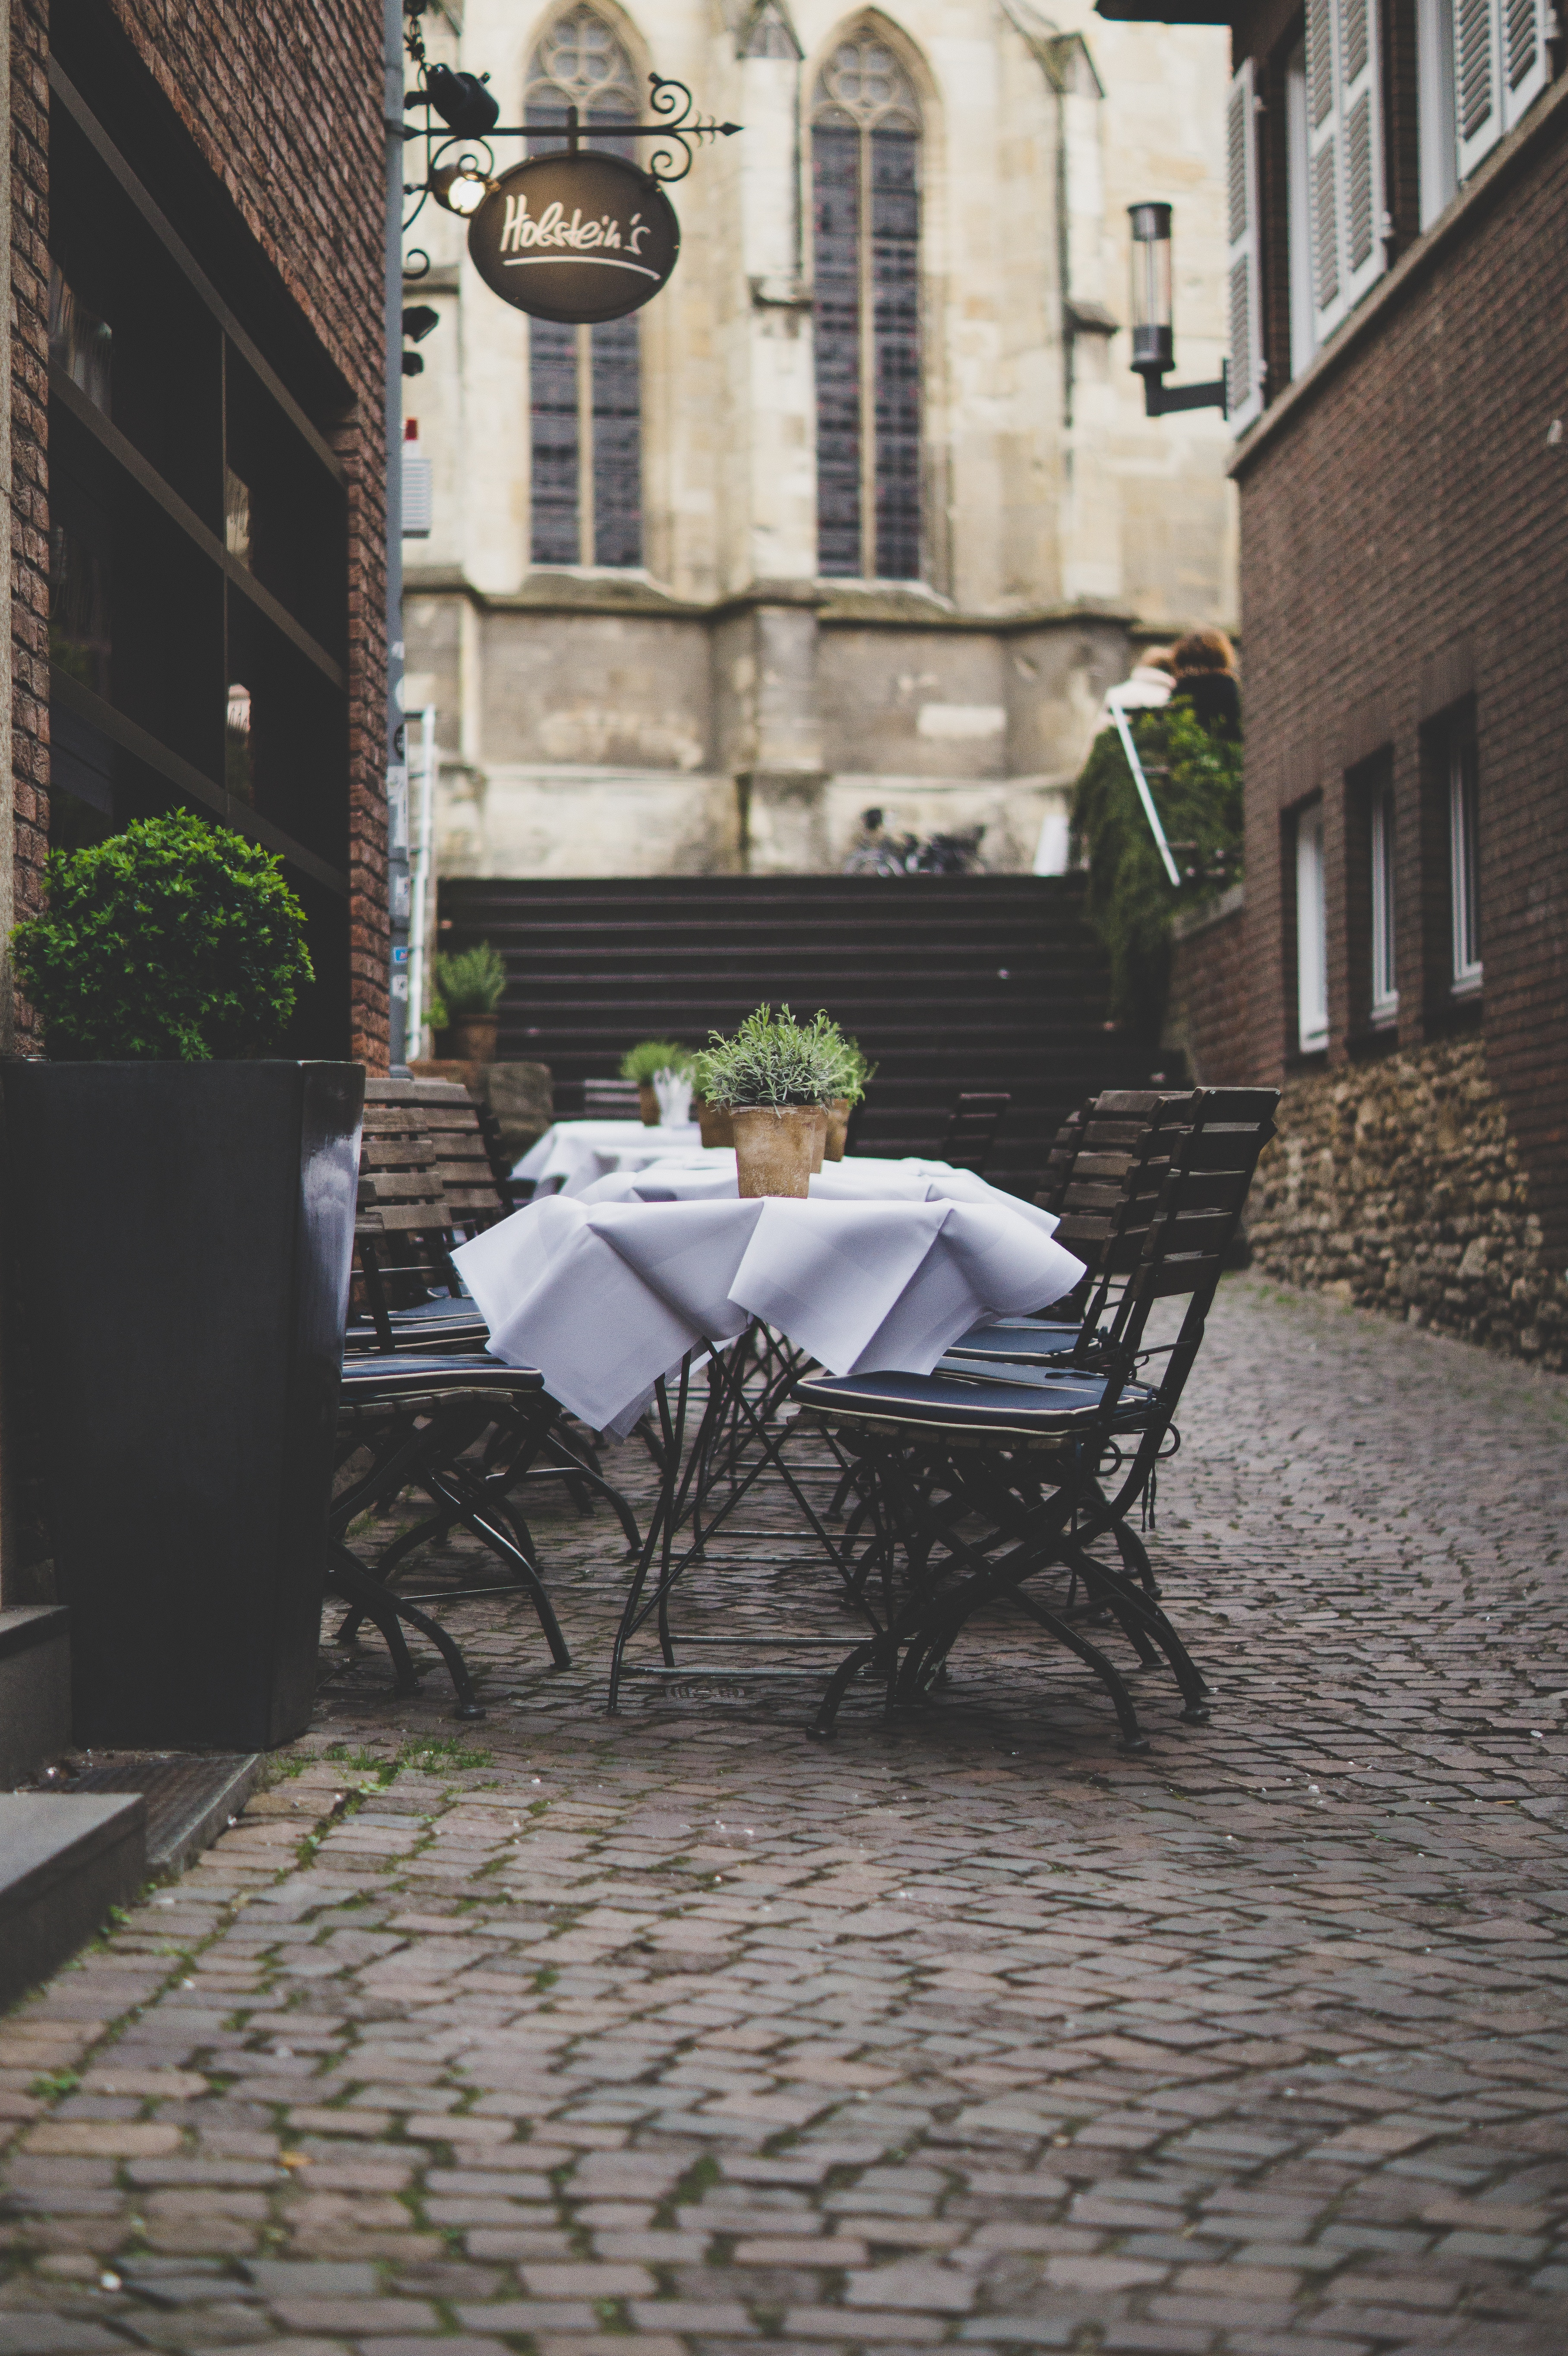 Starting a business: New versus used commercial restaurant furniture - which is better?